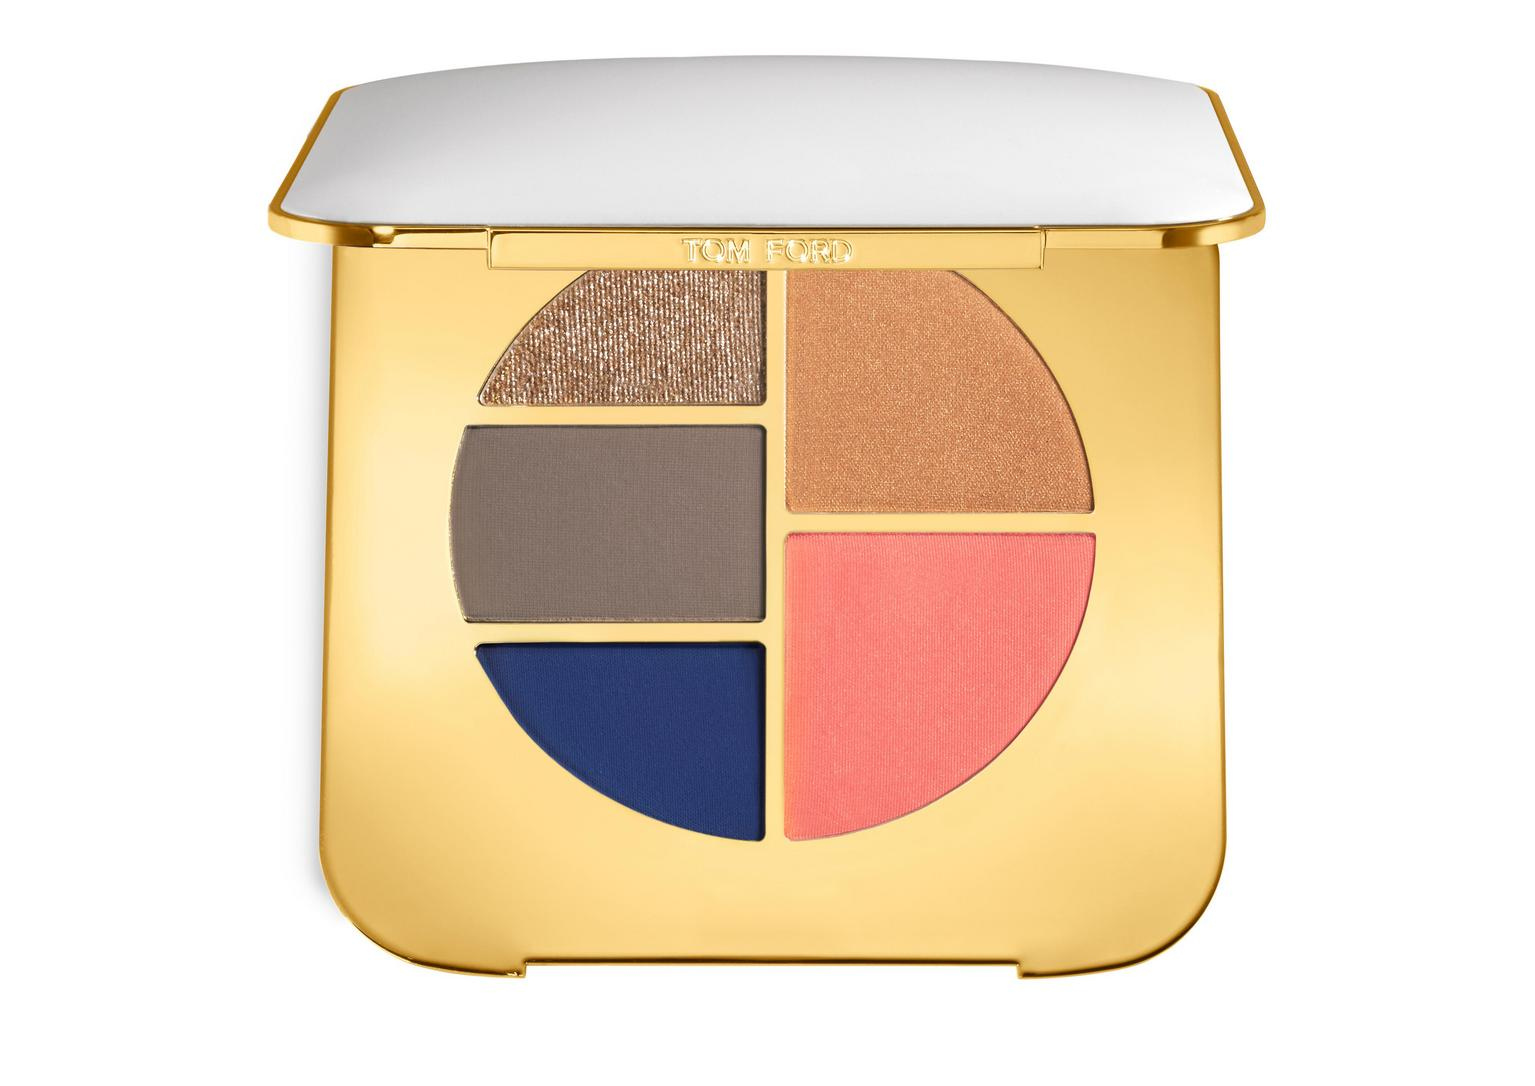 IN STOCK: TOM FORD Beauty Unabashed Eye & Cheek Compact featured image